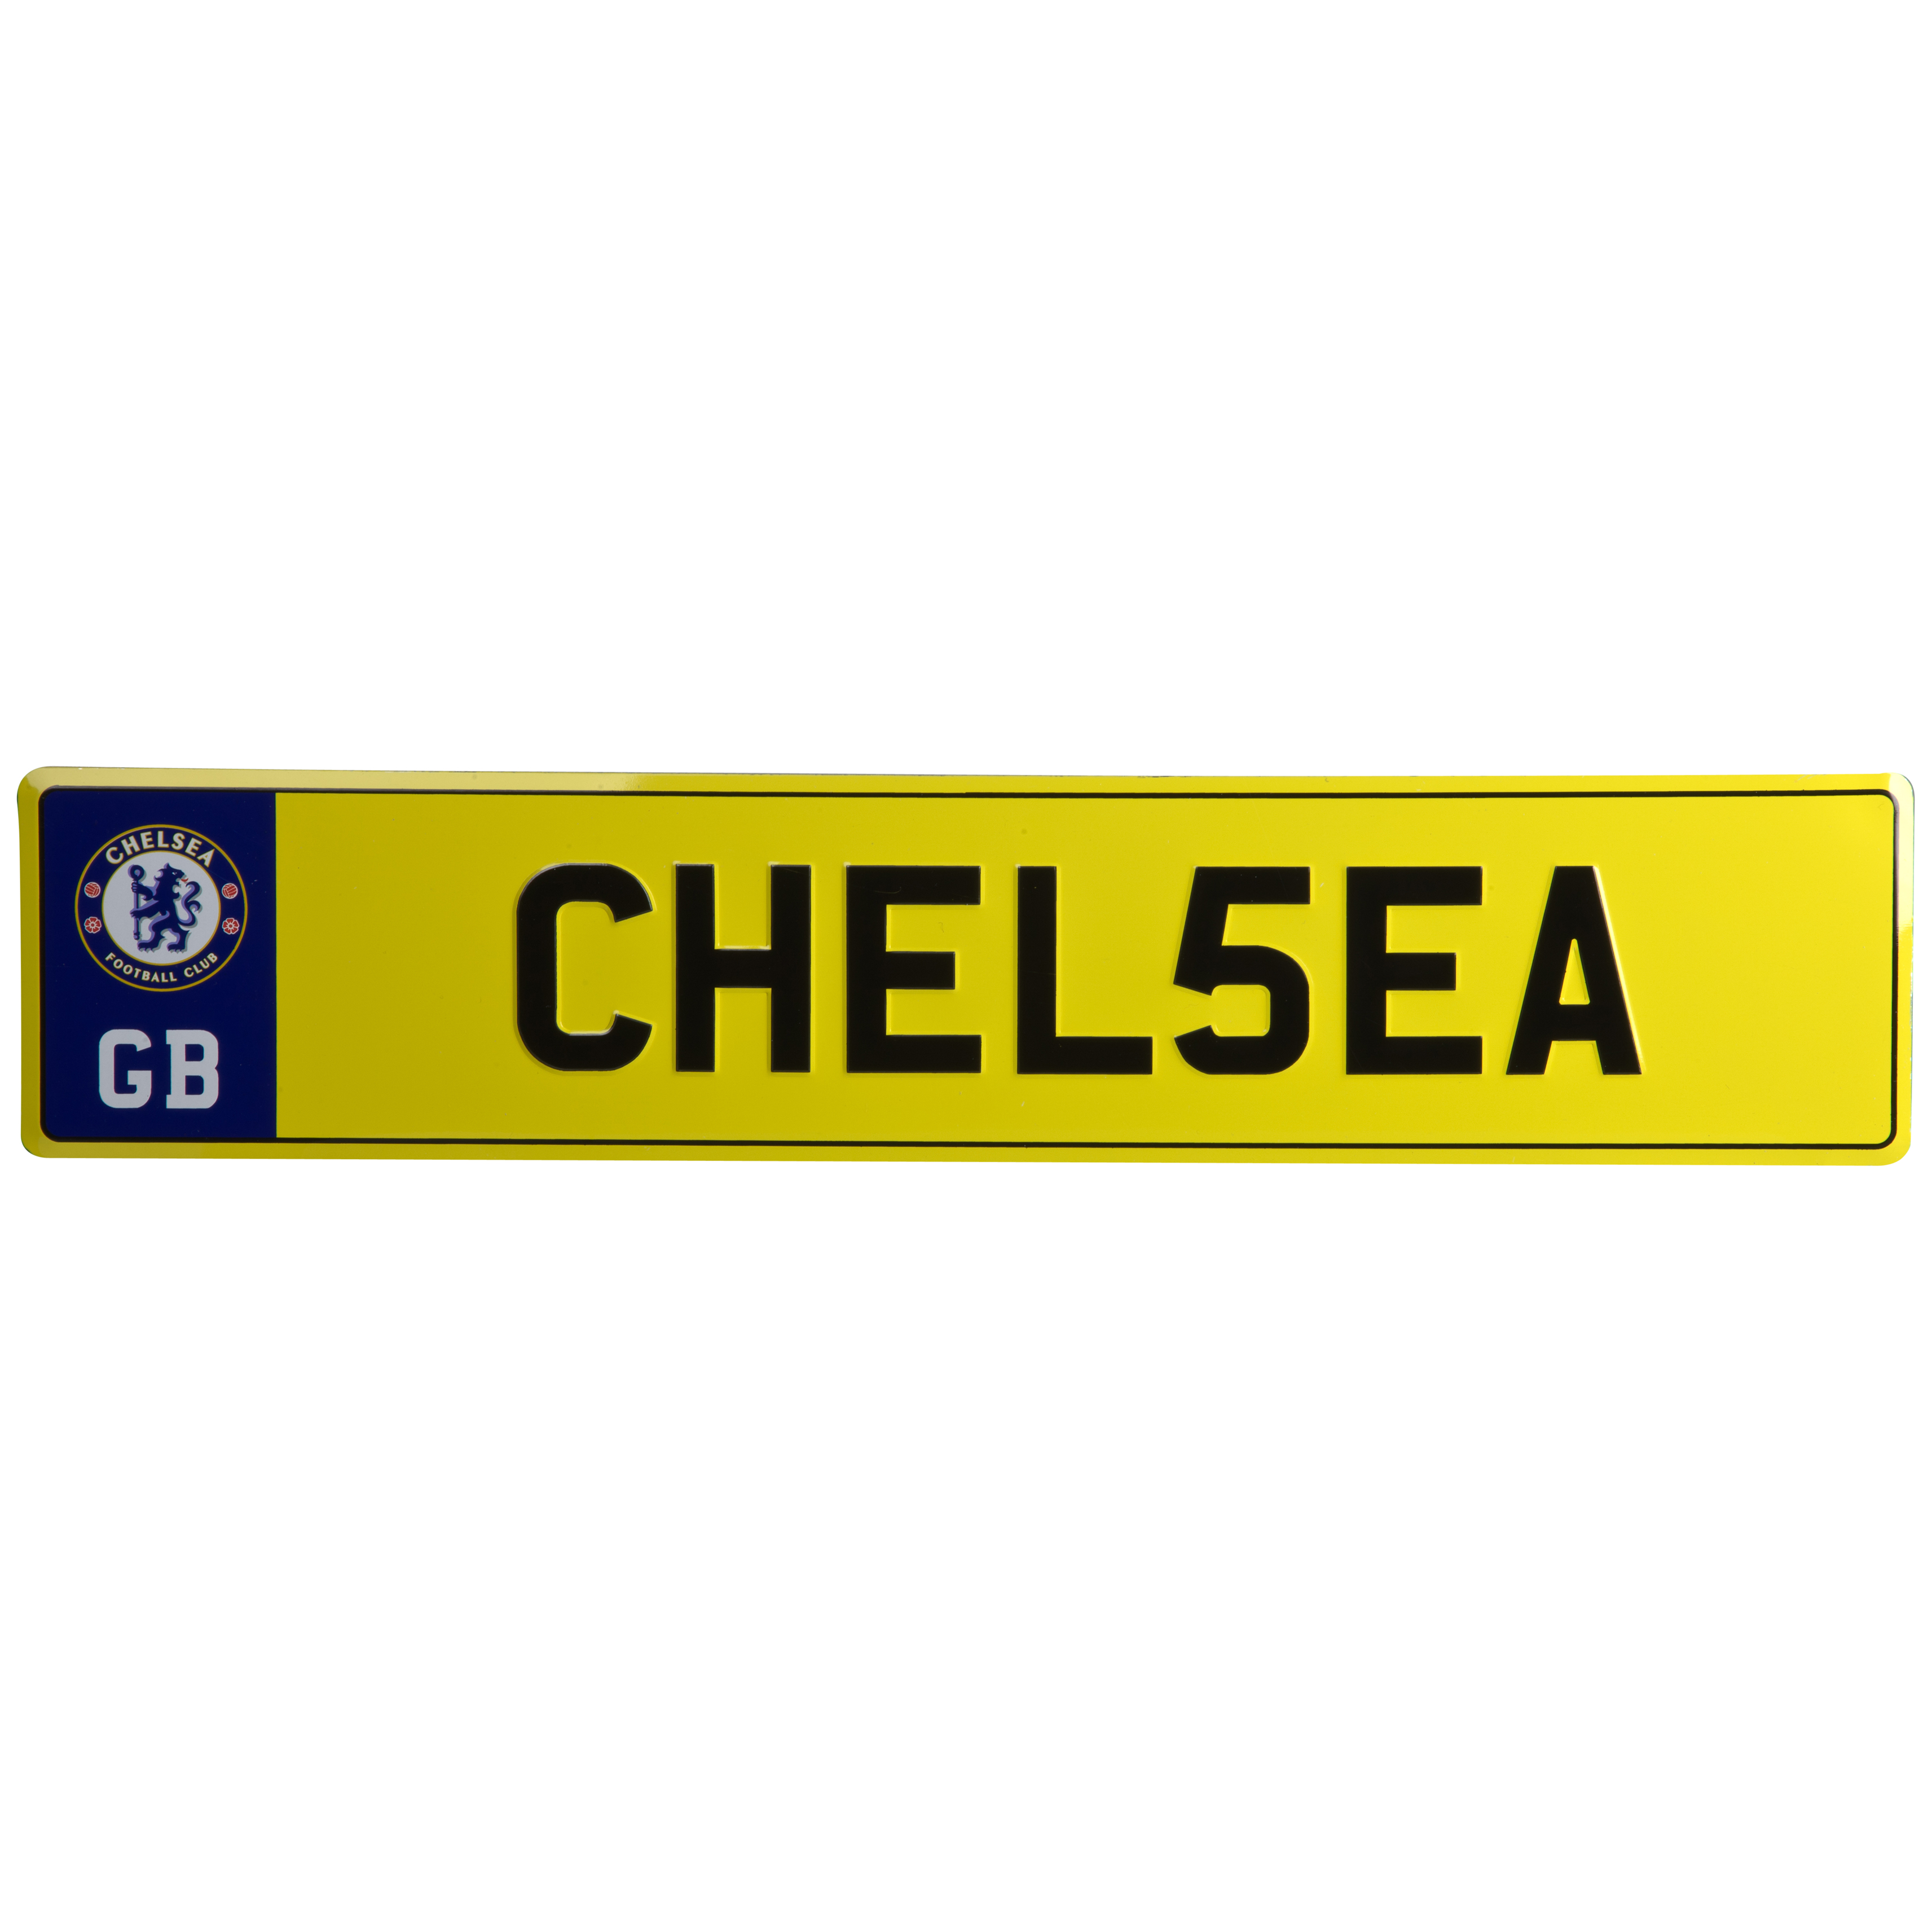 Chelsea Novelty License Plate